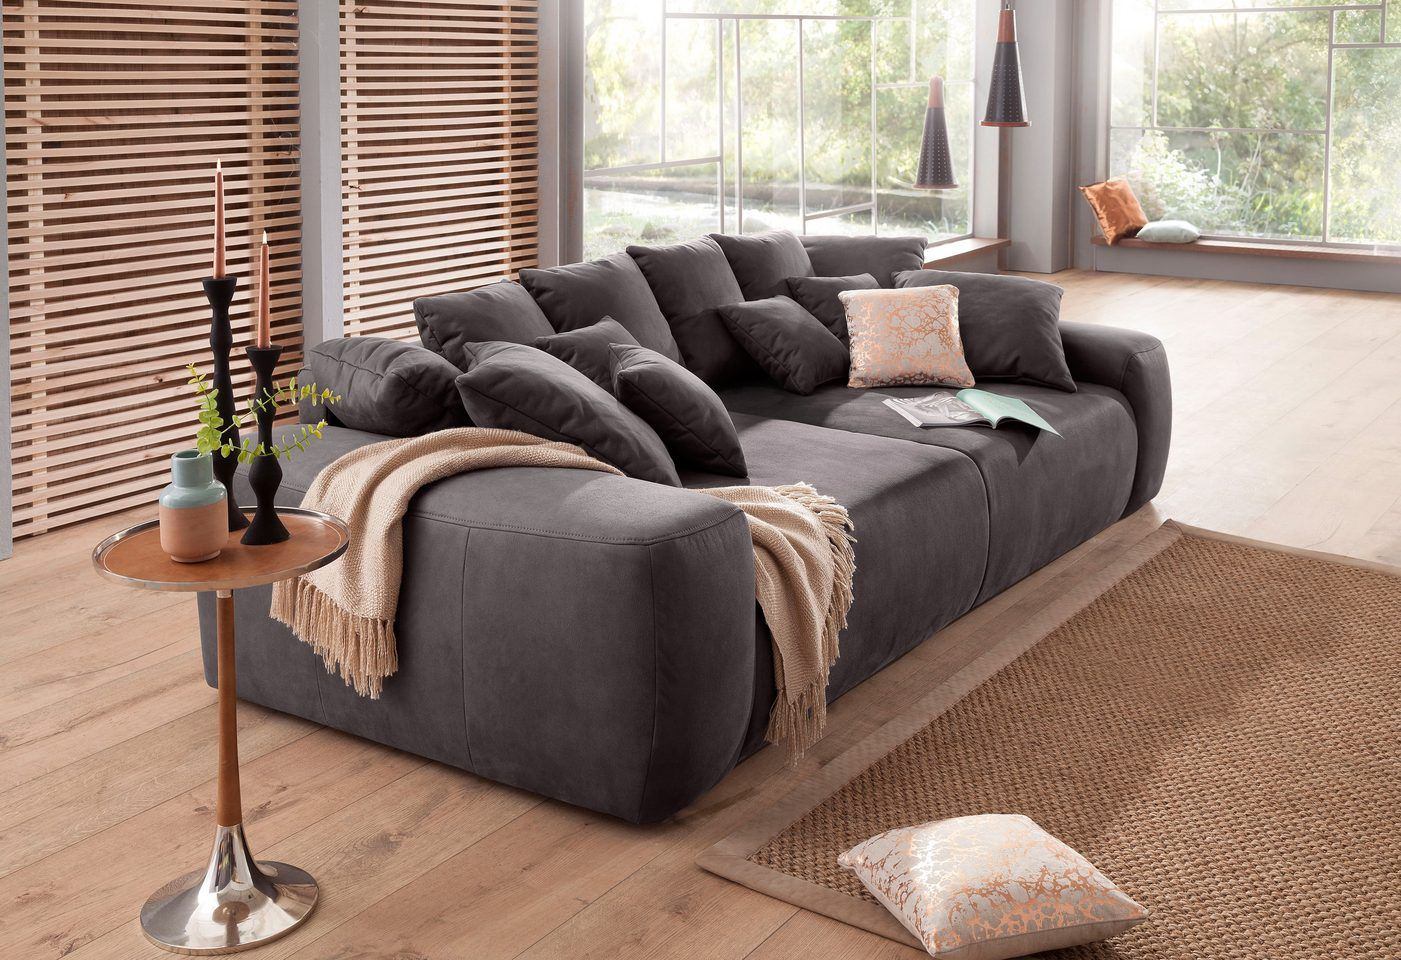 Moderne Sofa Home Affaire Big Sofa Breite 302 Cm Cnouch Best Seat In